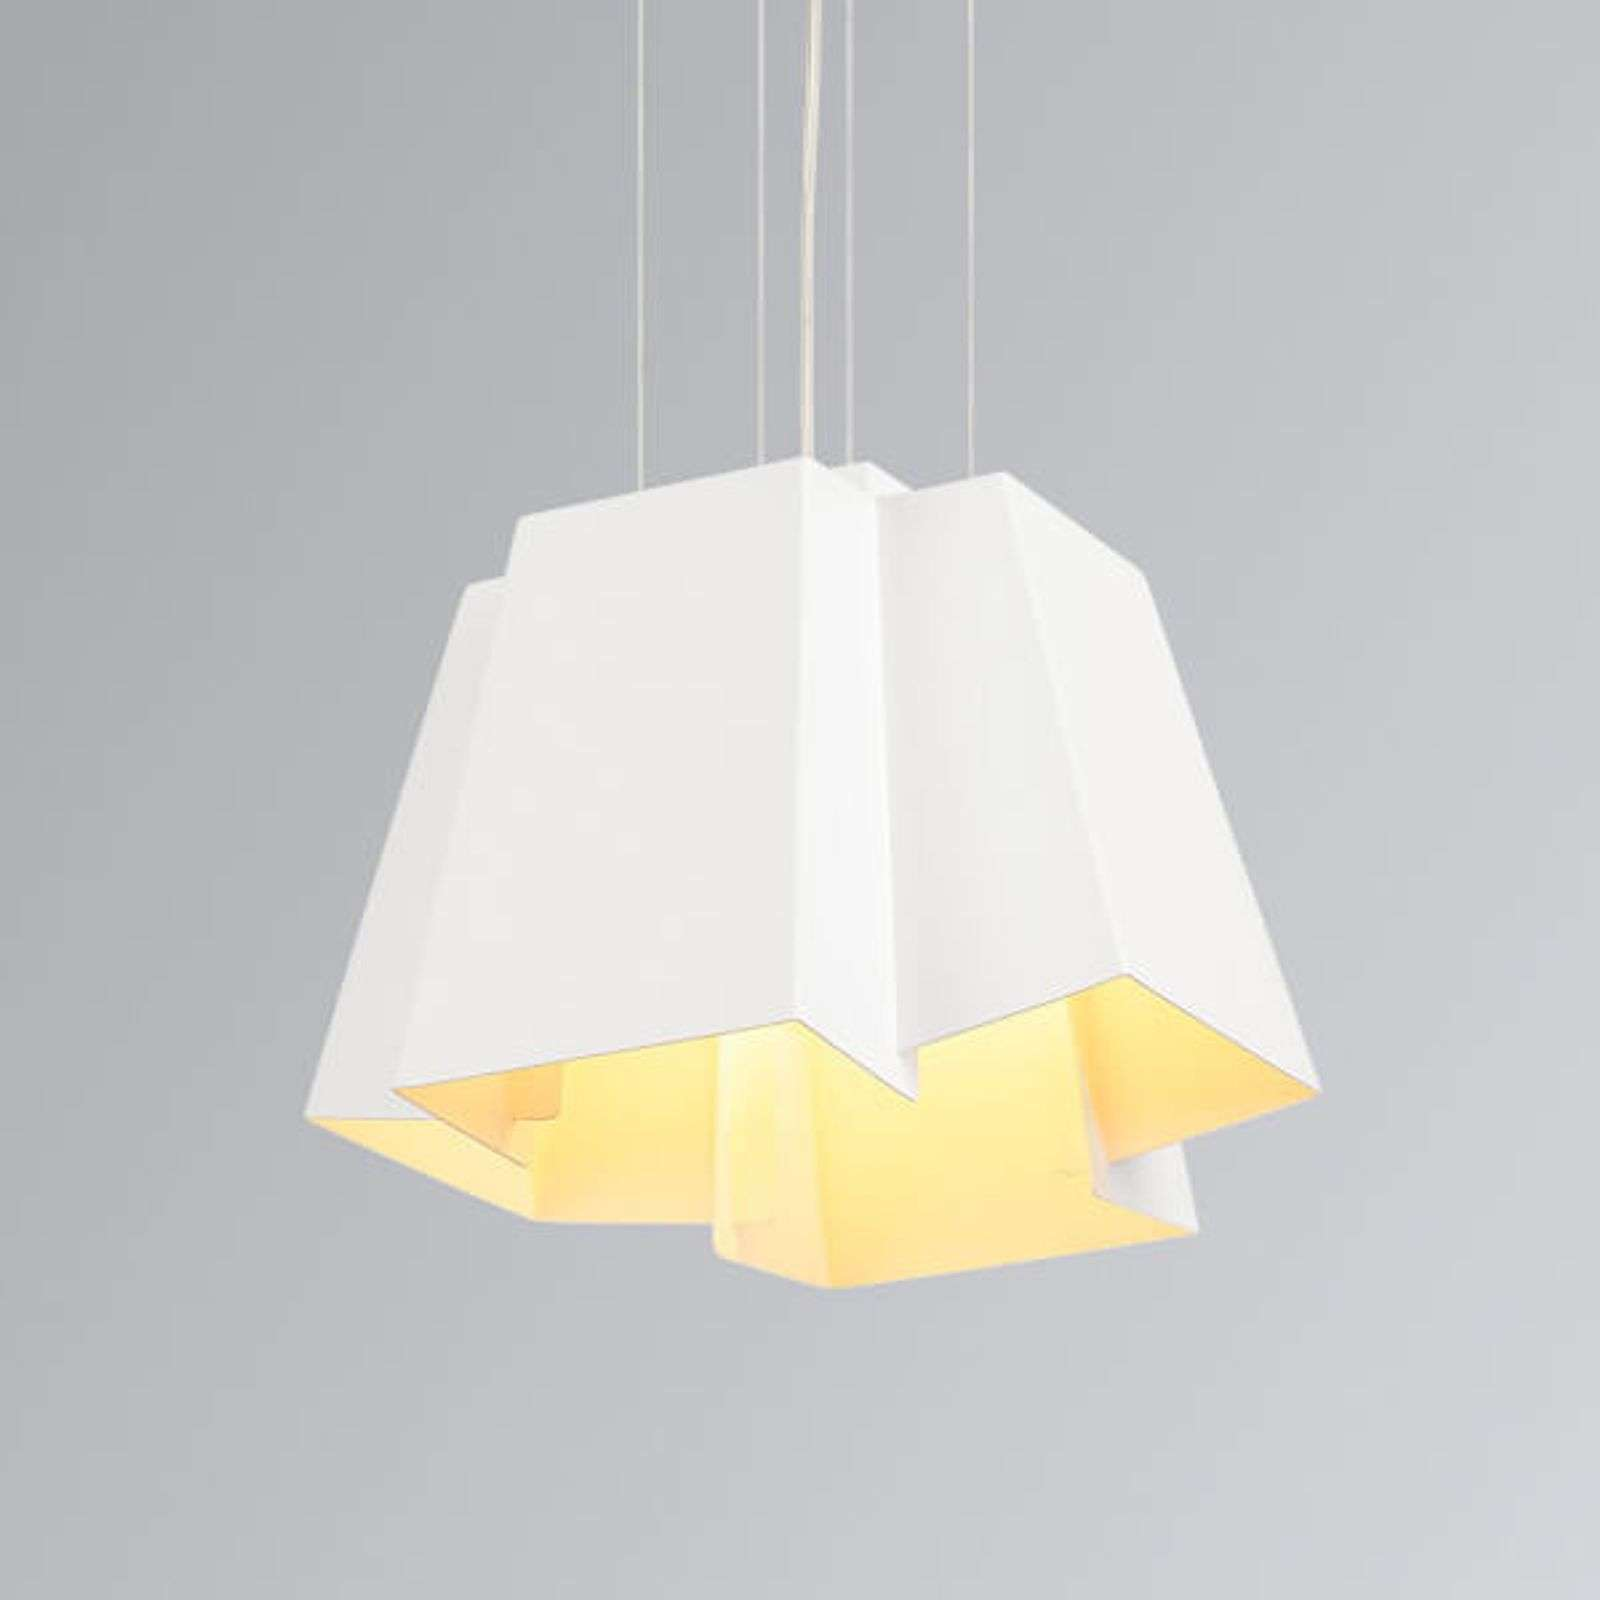 Suspension design blanche Soberbia avec LED